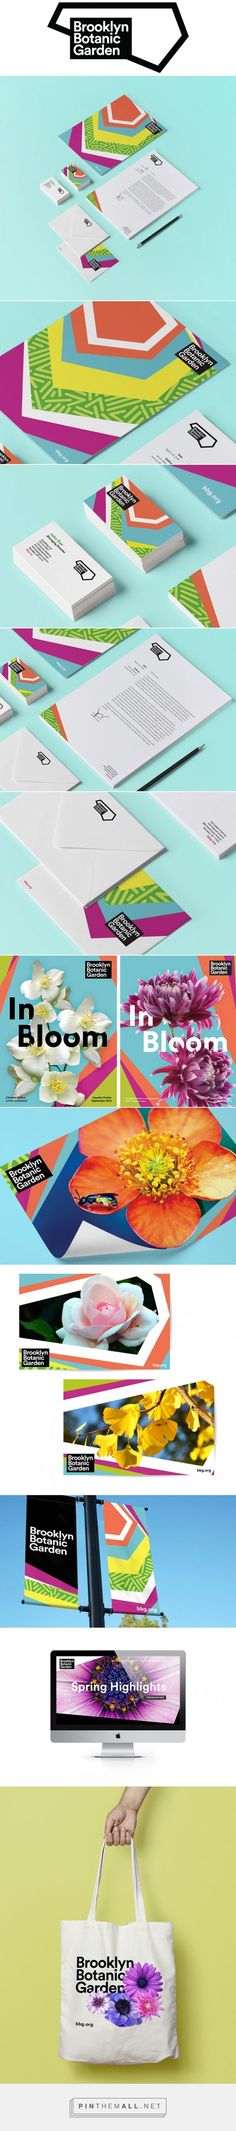 Brooklyn Botanic Garden on Behance… – a grouped images picture – corporate branding identity Corporate Design, Corporate Id, Corporate Branding, Brand Identity Design, Graphic Design Branding, Logo Design, Design Agency, City Branding, Stationary Branding